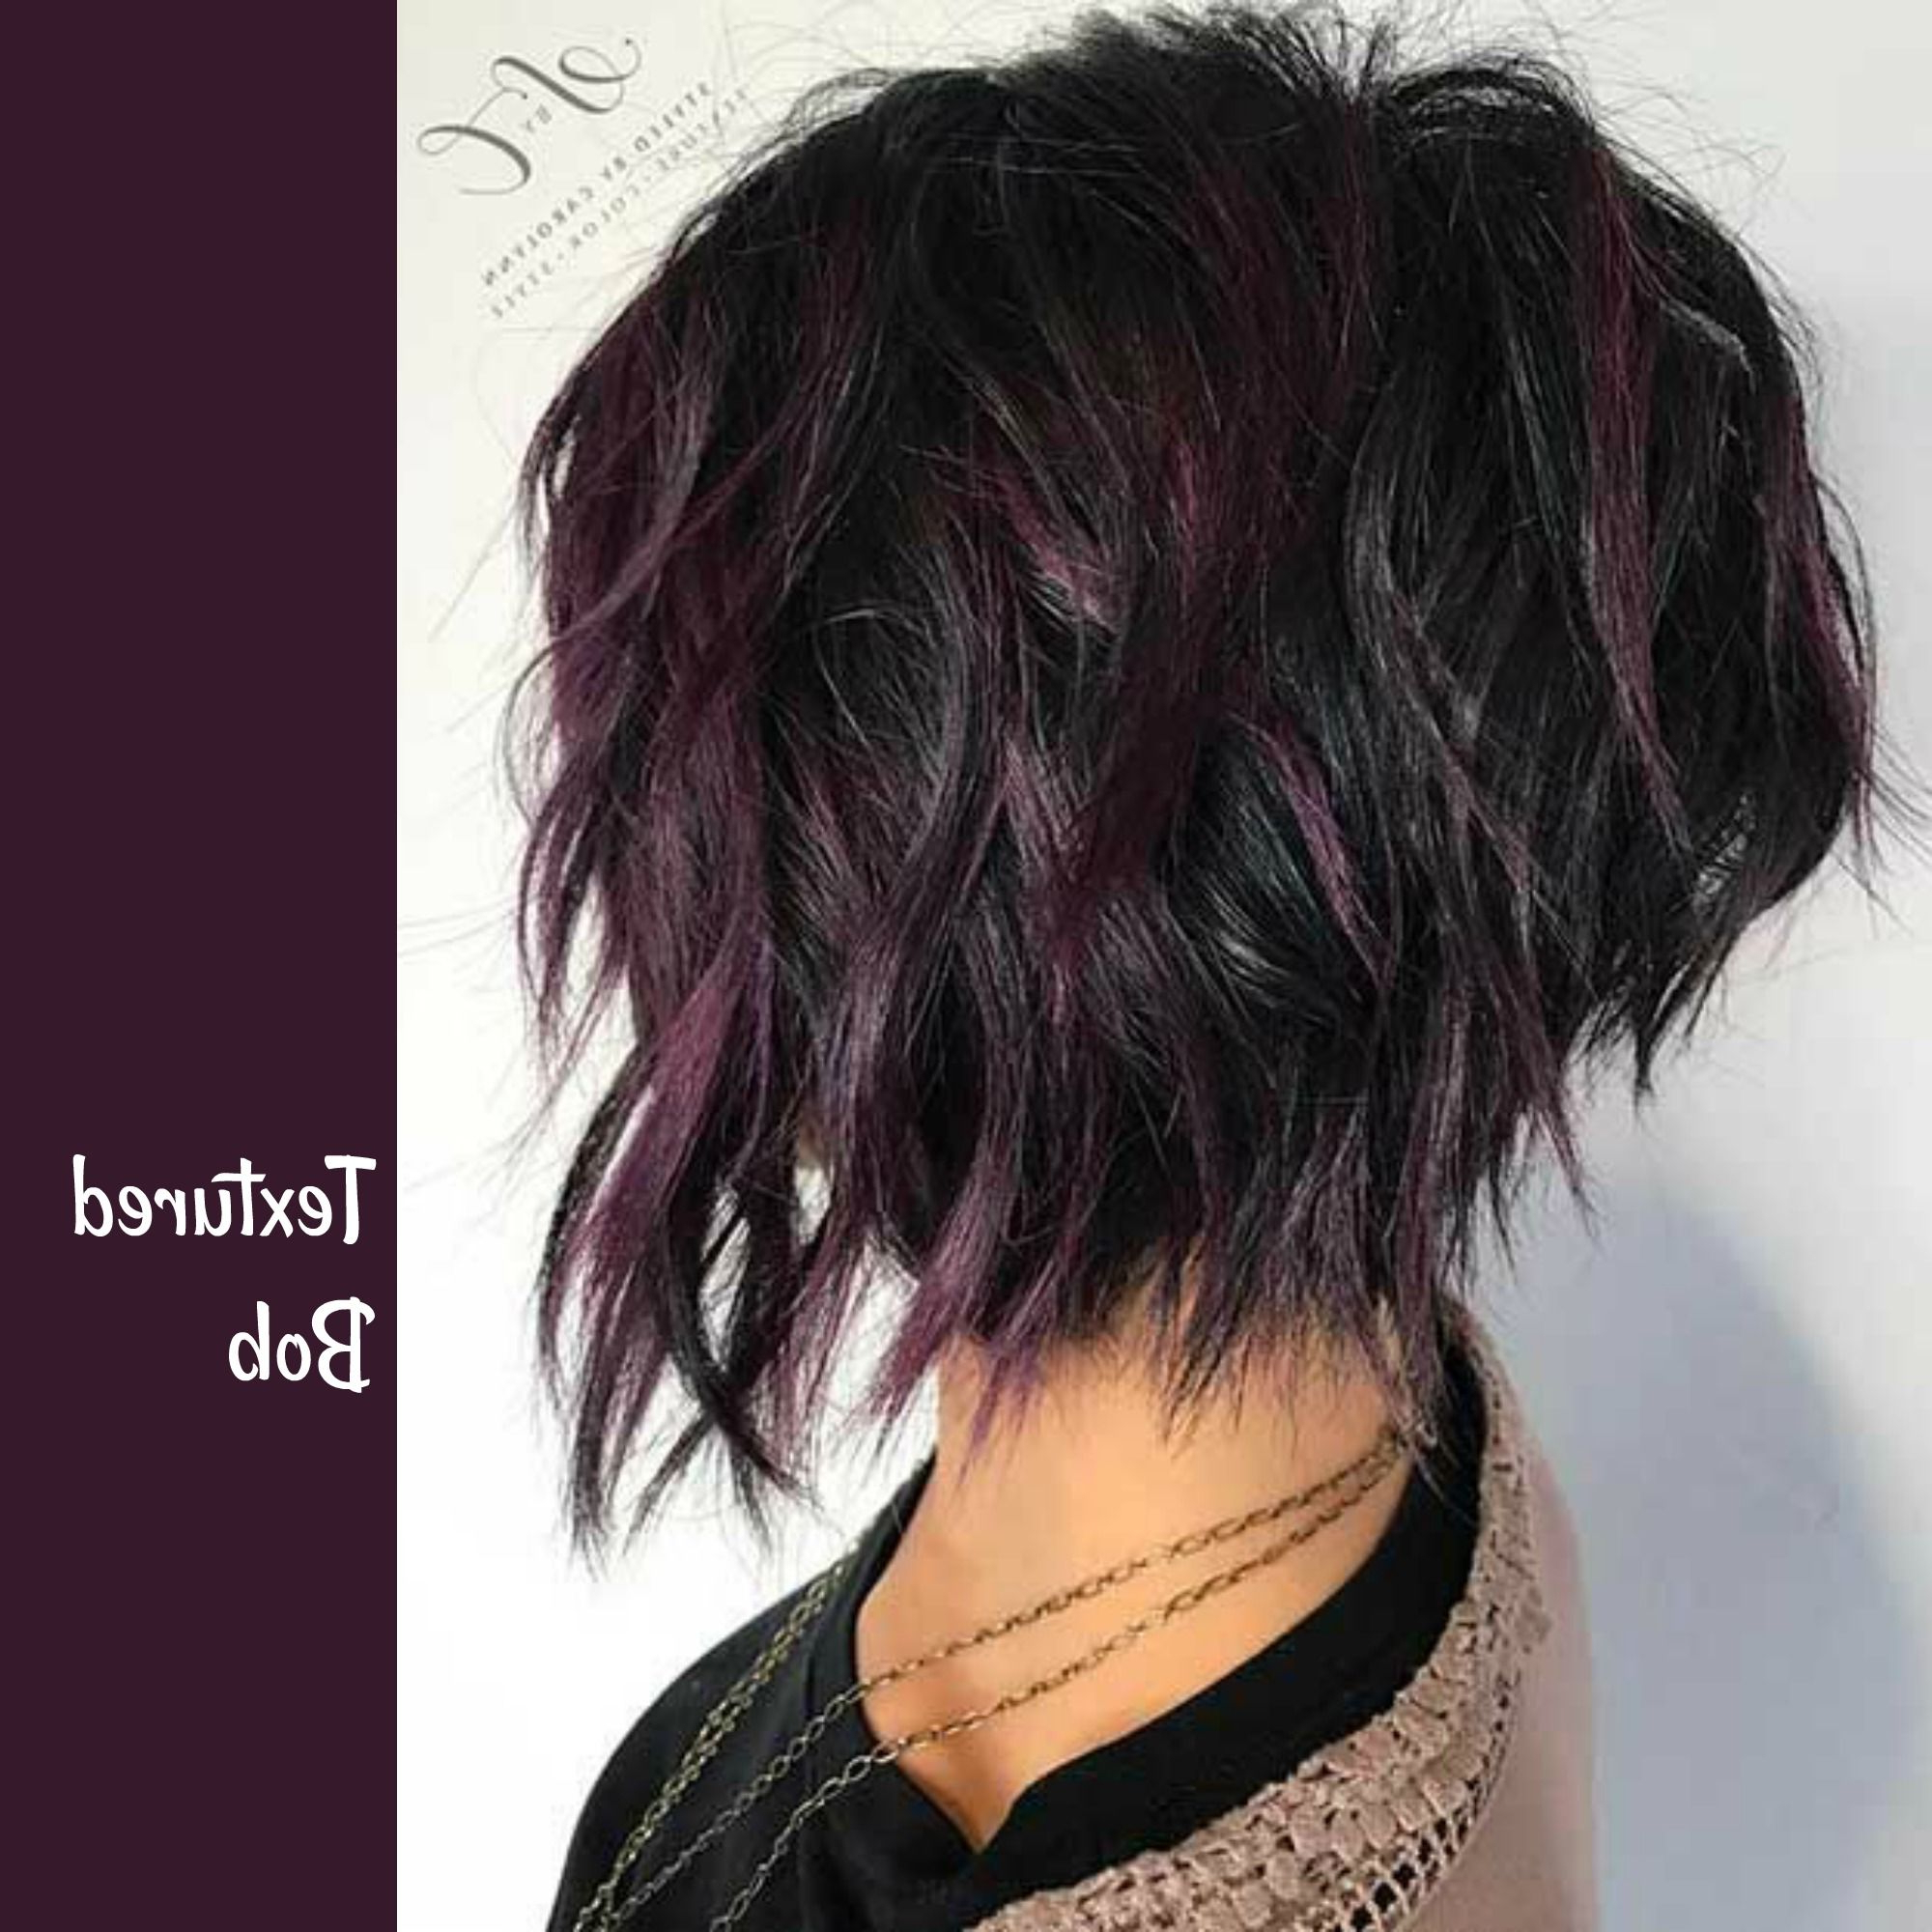 Textured Bob With Purple Highlights On Dark Hair | Hair Style With Regard To Black Inverted Bob Hairstyles With Choppy Layers (View 17 of 20)